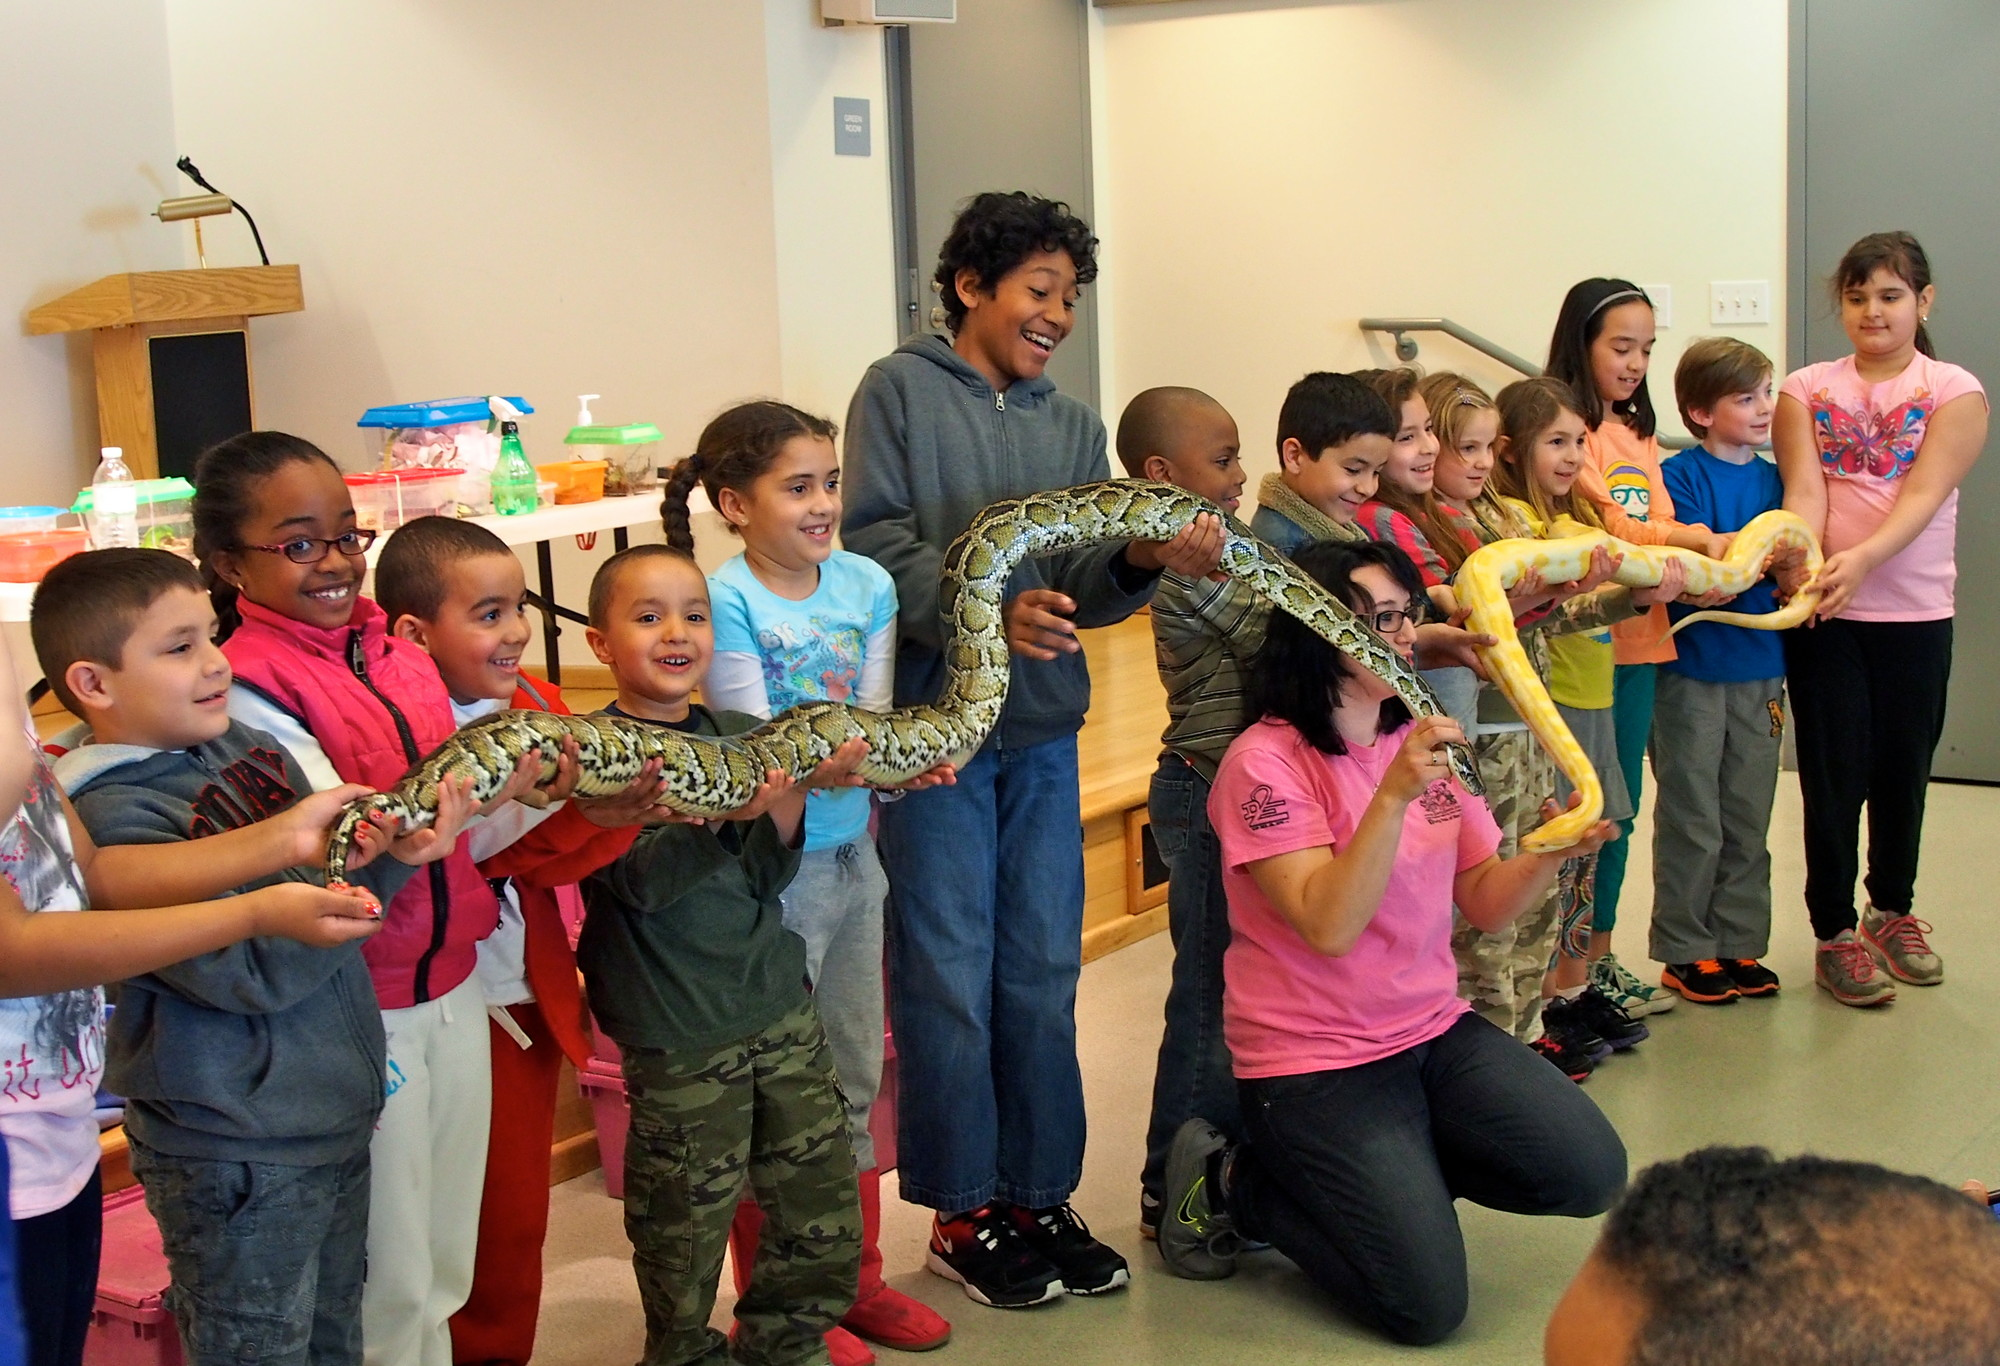 More than 100 kids and parents attended a Party Pets exhibition at the Baldwin library recently. Here, Jake and Banana, a pair of Burmese pythons, made a bunch of new friends.